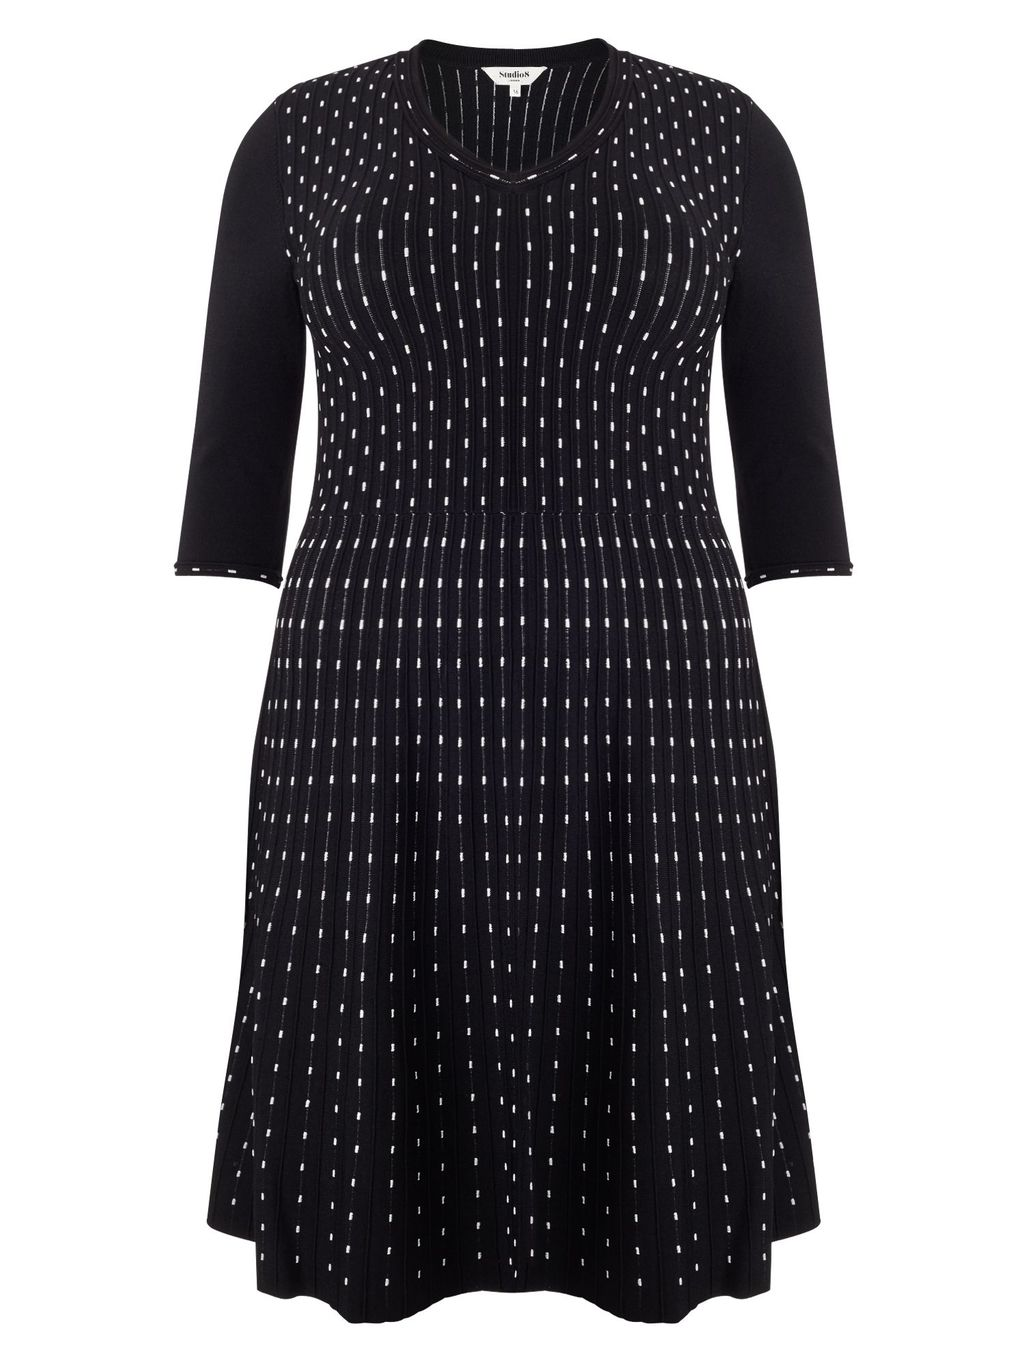 Milly Dress, Black - neckline: v-neck; pattern: polka dot; secondary colour: white; predominant colour: black; length: on the knee; fit: fitted at waist & bust; style: fit & flare; fibres: viscose/rayon - stretch; hip detail: subtle/flattering hip detail; sleeve length: 3/4 length; sleeve style: standard; trends: monochrome; pattern type: fabric; pattern size: standard; texture group: woven light midweight; occasions: creative work; season: a/w 2015; wardrobe: highlight